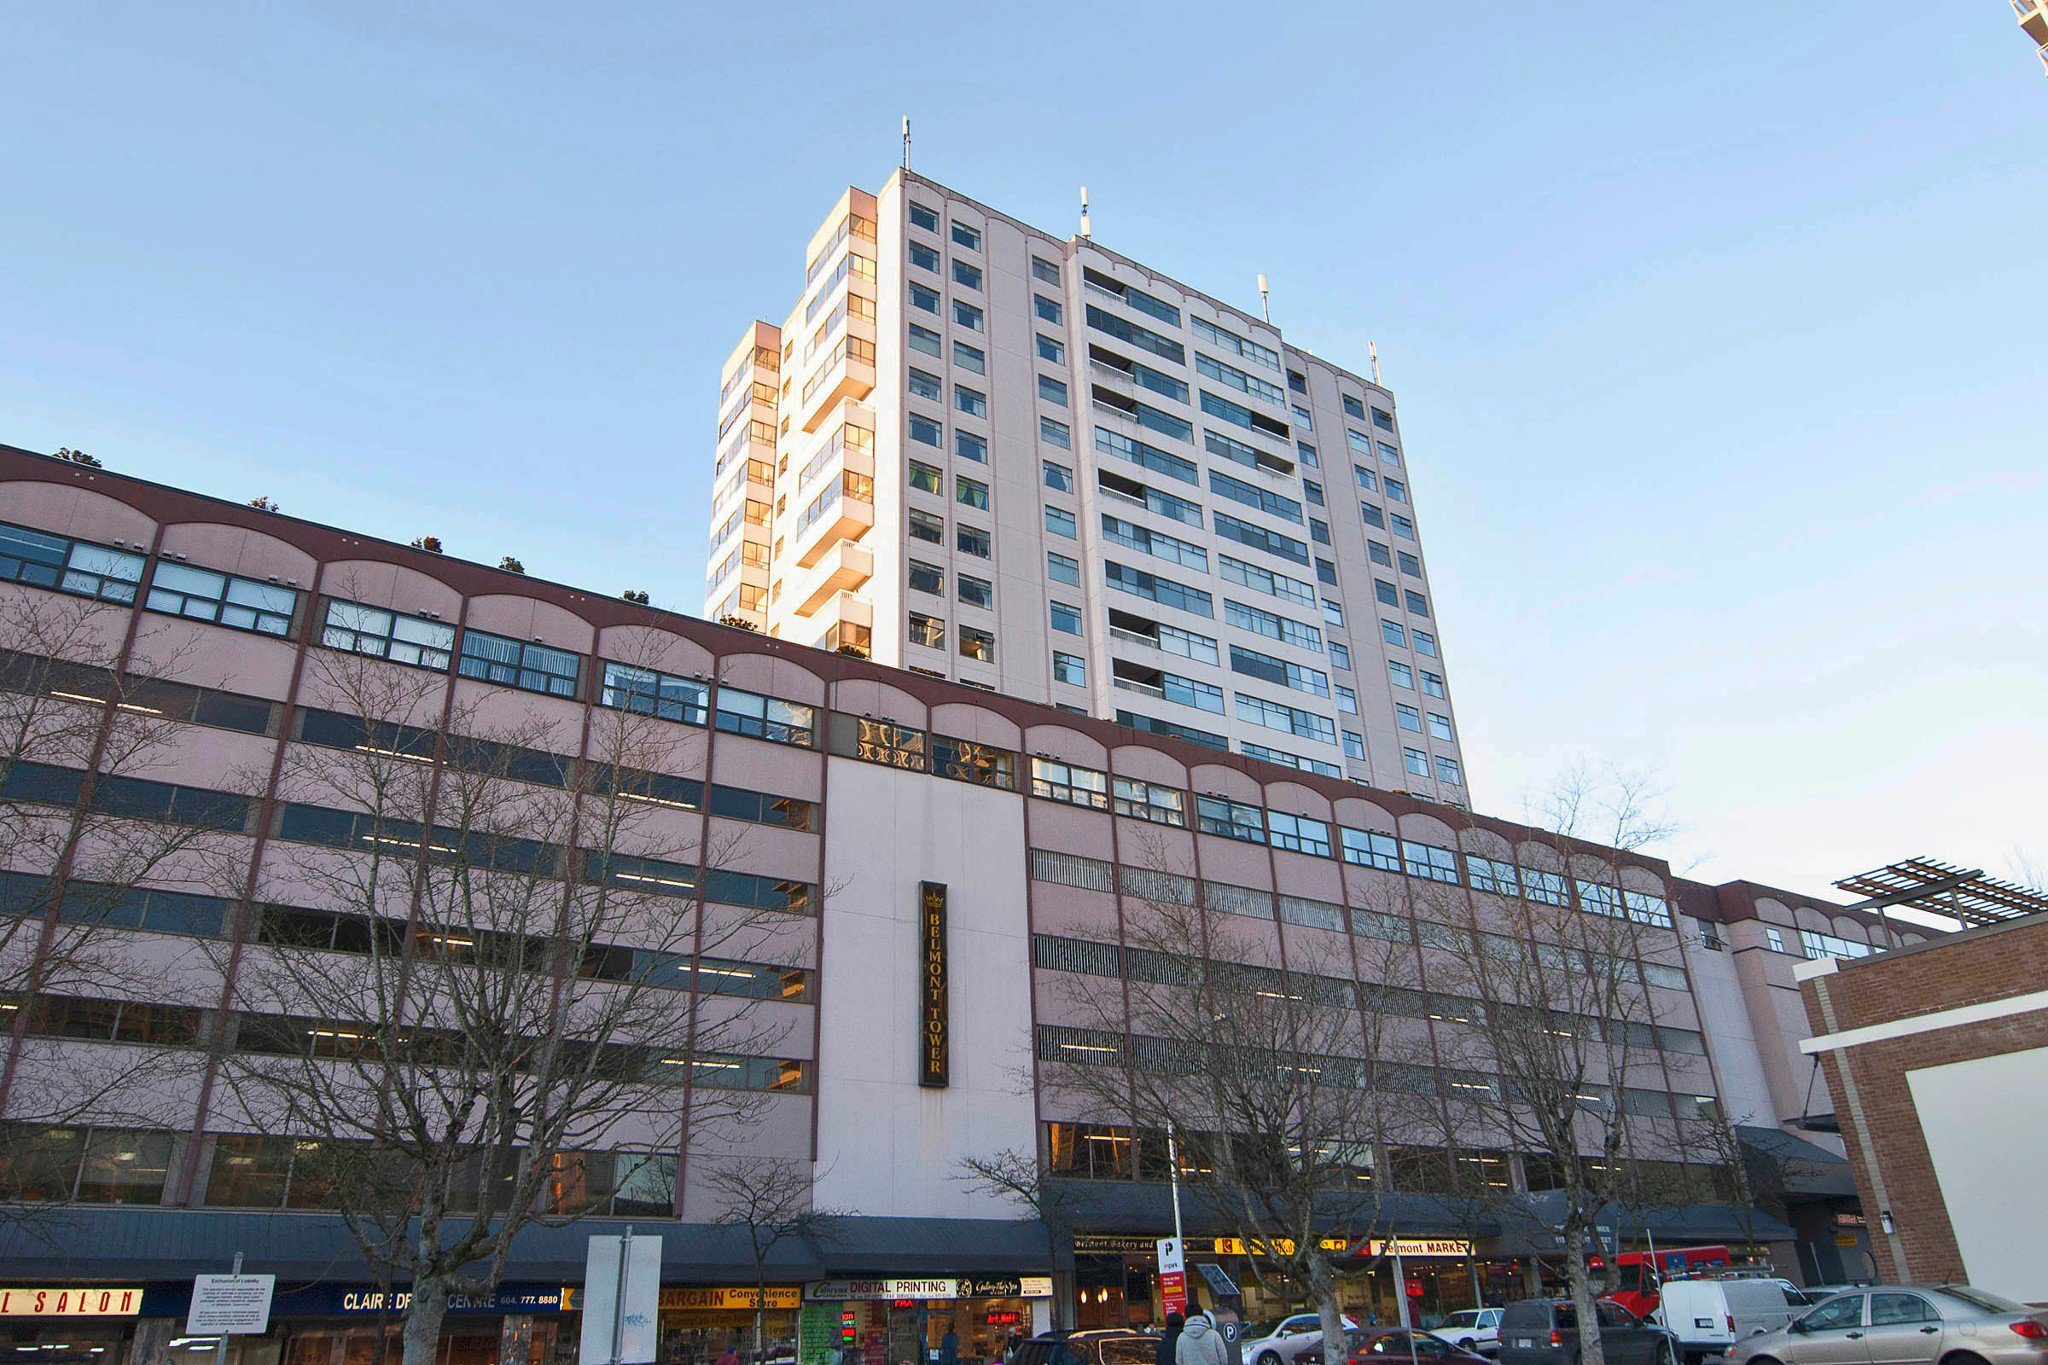 """Main Photo: 1008 615 BELMONT Street in New Westminster: Uptown NW Condo for sale in """"BELMONT TOWERS"""" : MLS®# R2329044"""